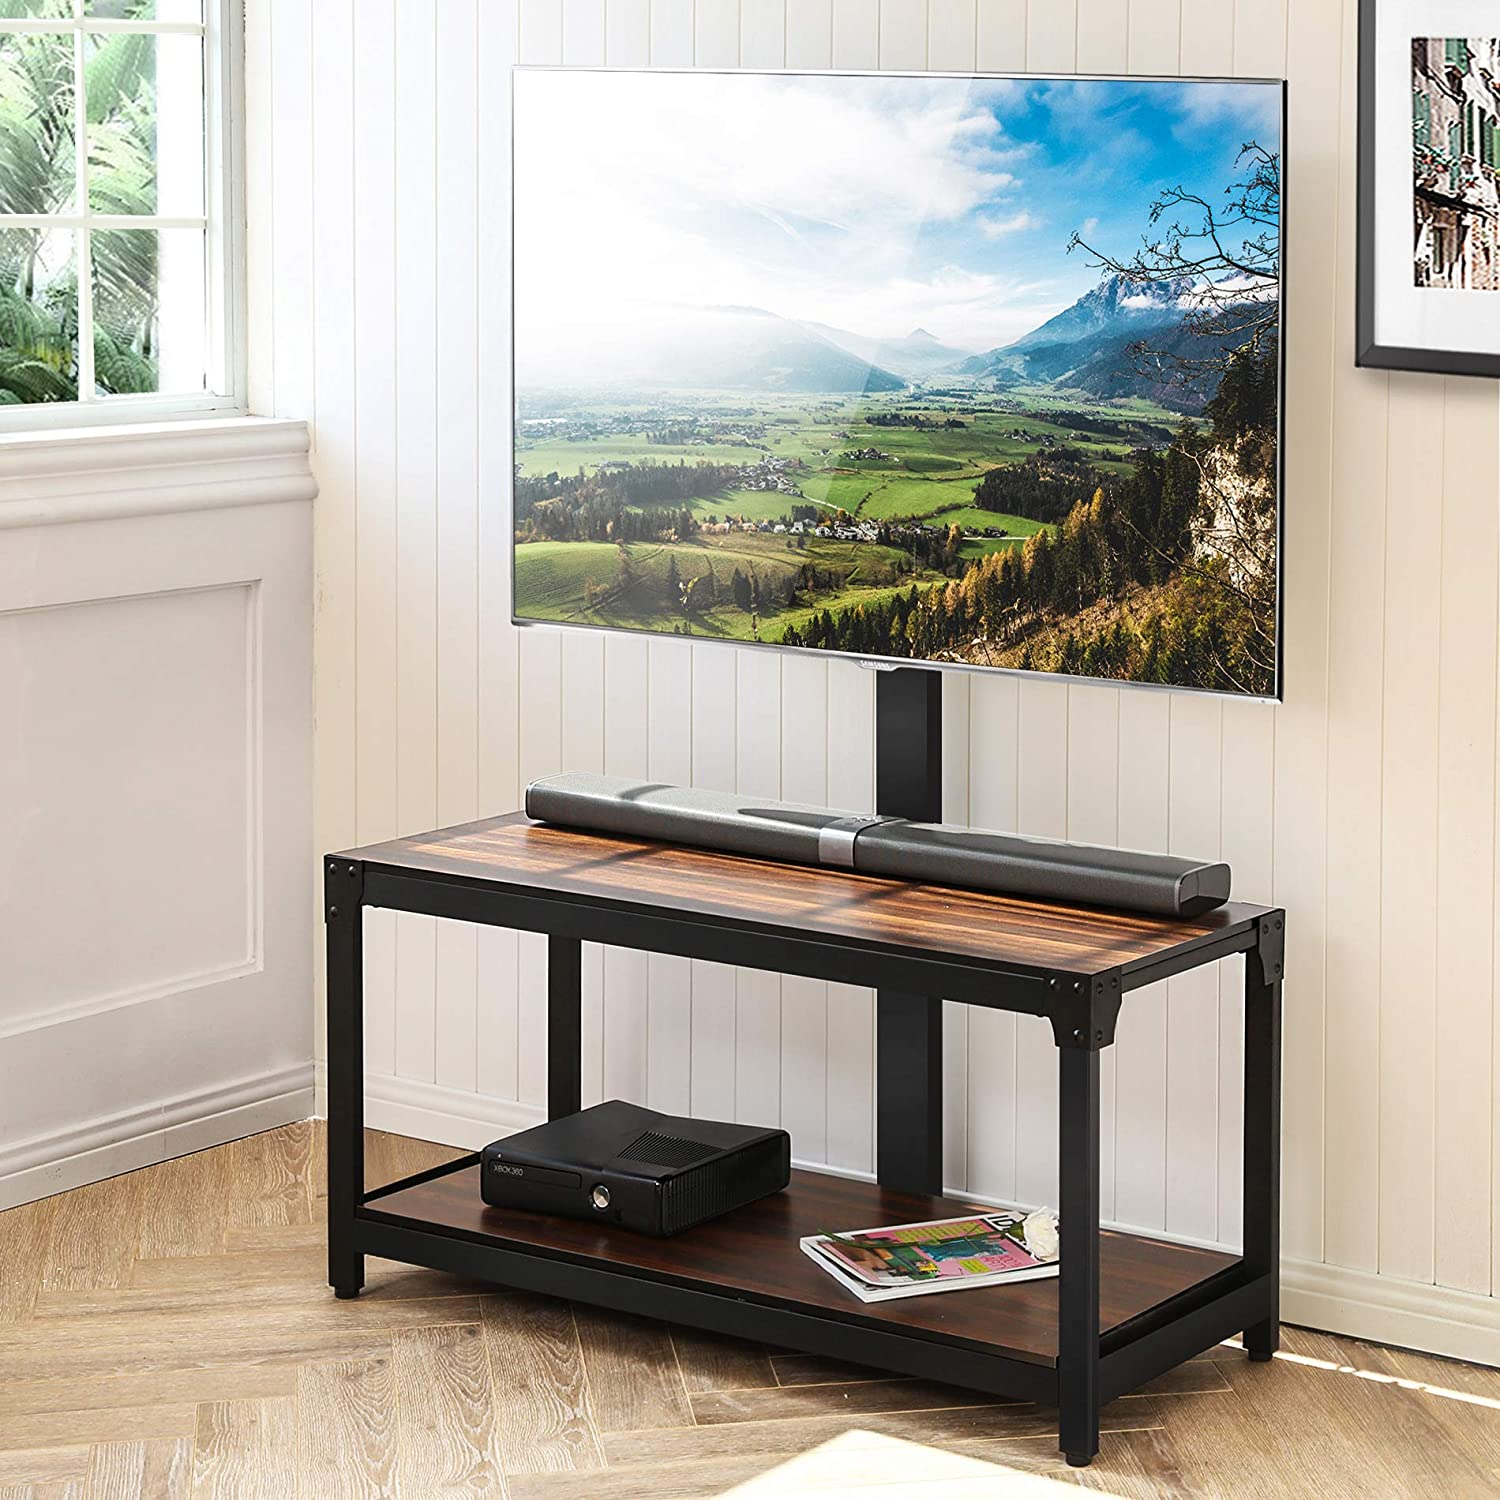 FITUEYES Floor TV Stand with Swivel Mount and Height Adjustable Flat Curved Screen TV for 32 50 55 65 inch Vizio Sumsung Sony Tvs Max VESA 400×600 TW208001MB